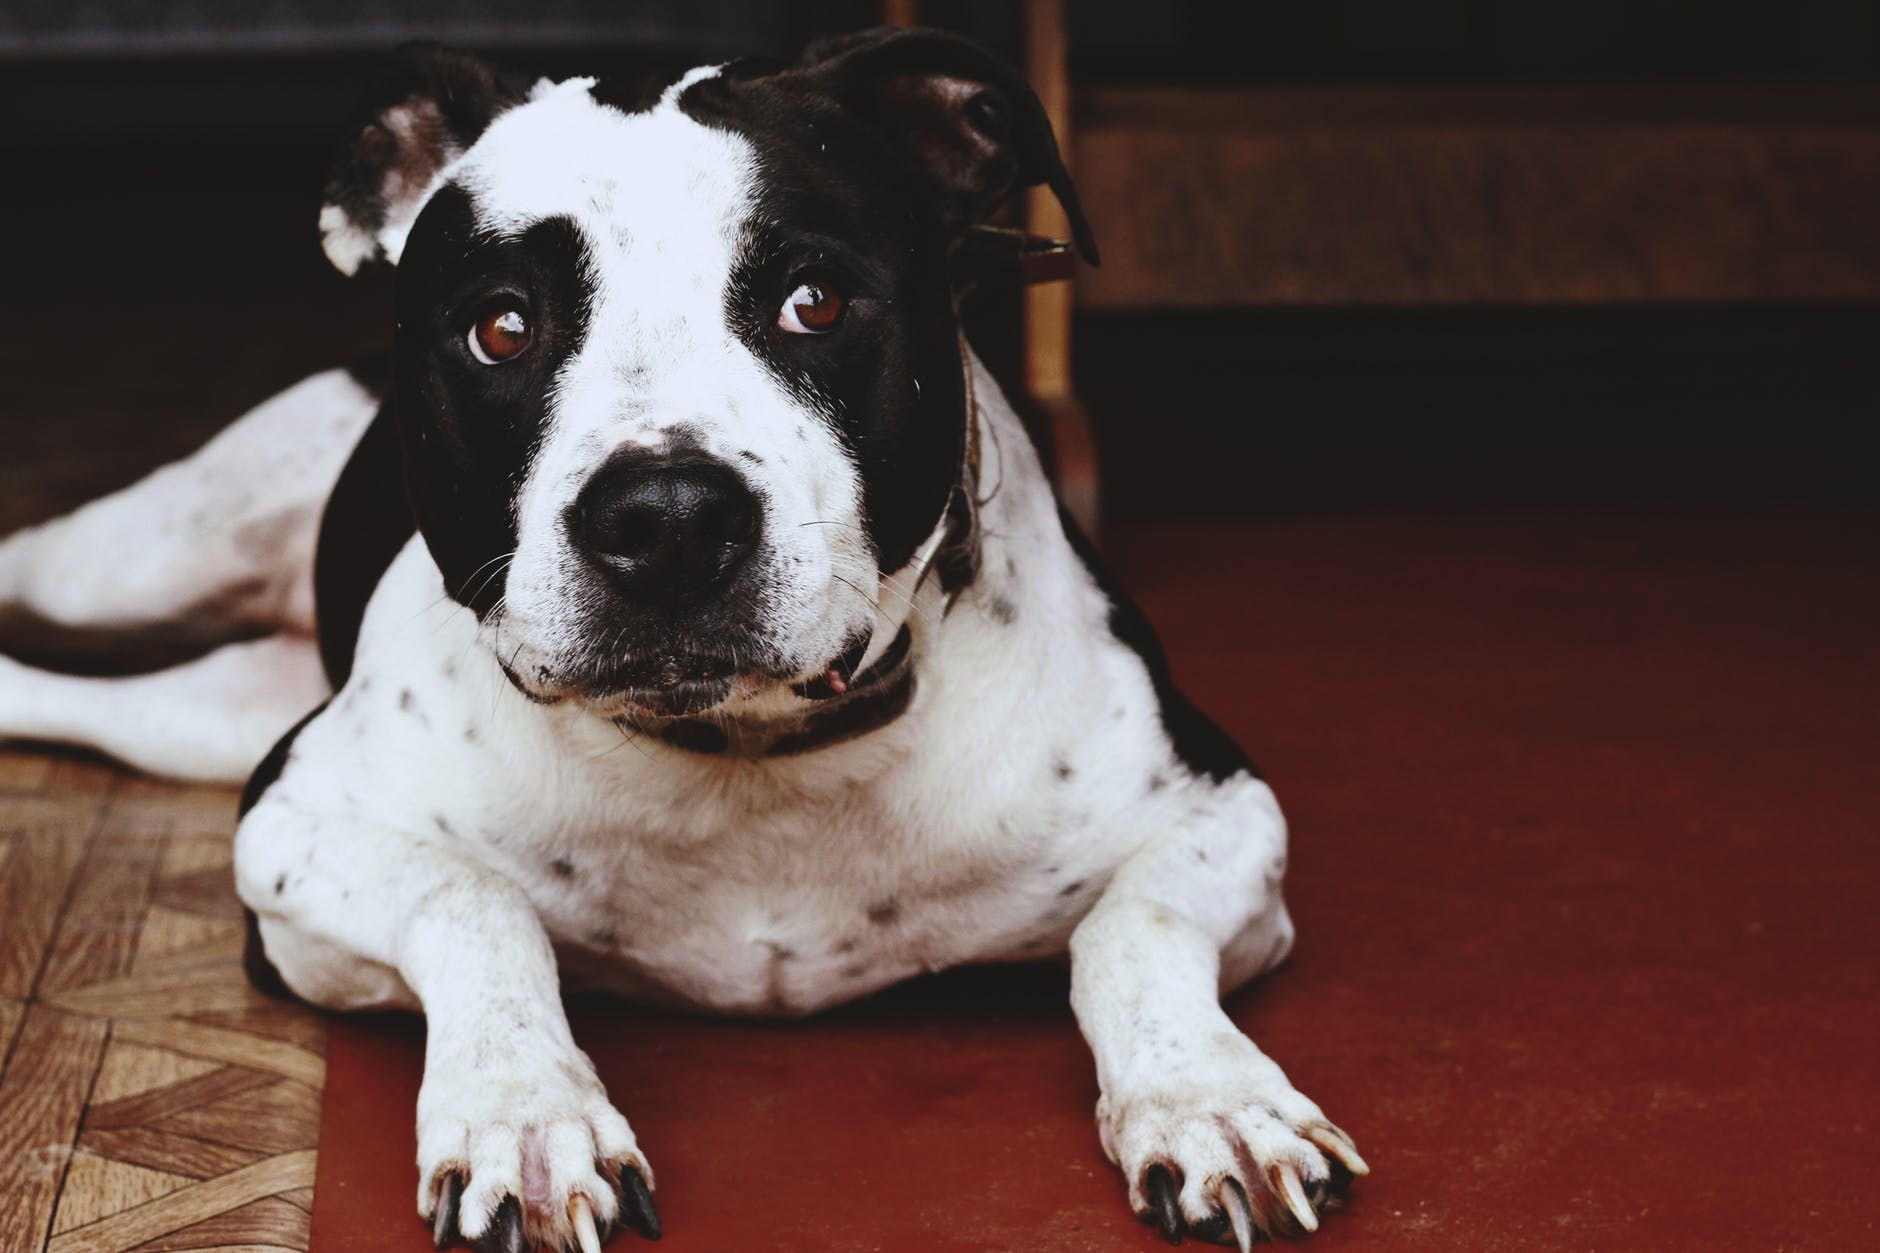 Staffordshire Bull Terrier with white fur and black spots